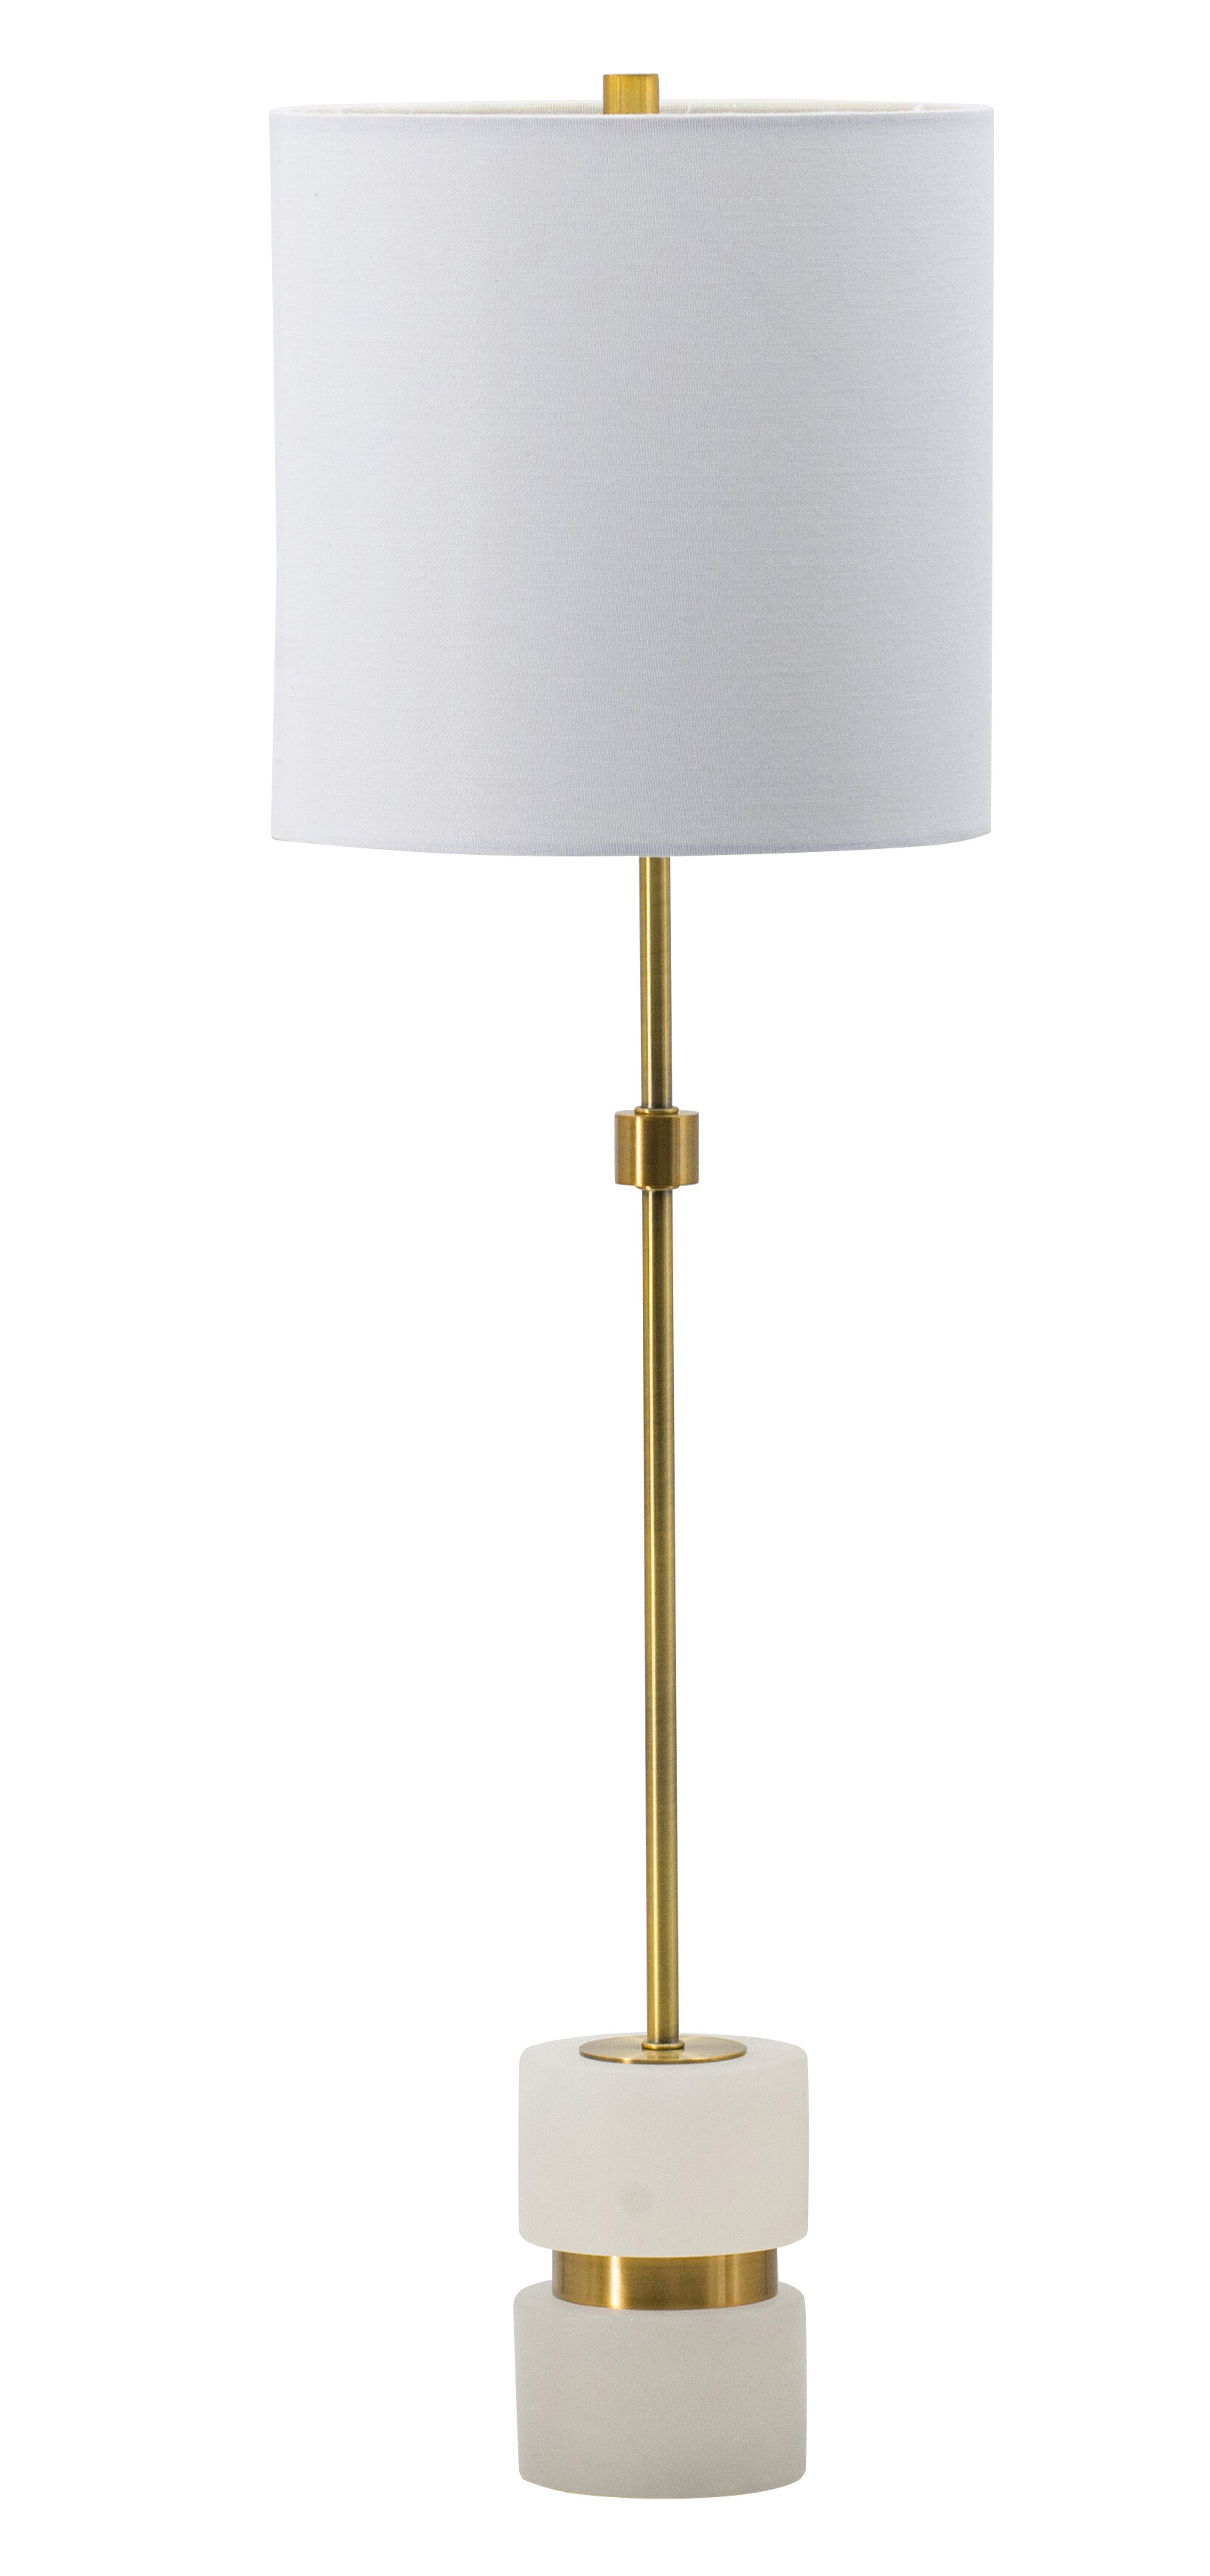 Everly Quinn Zain 34 Gold Table Lamp Wayfair